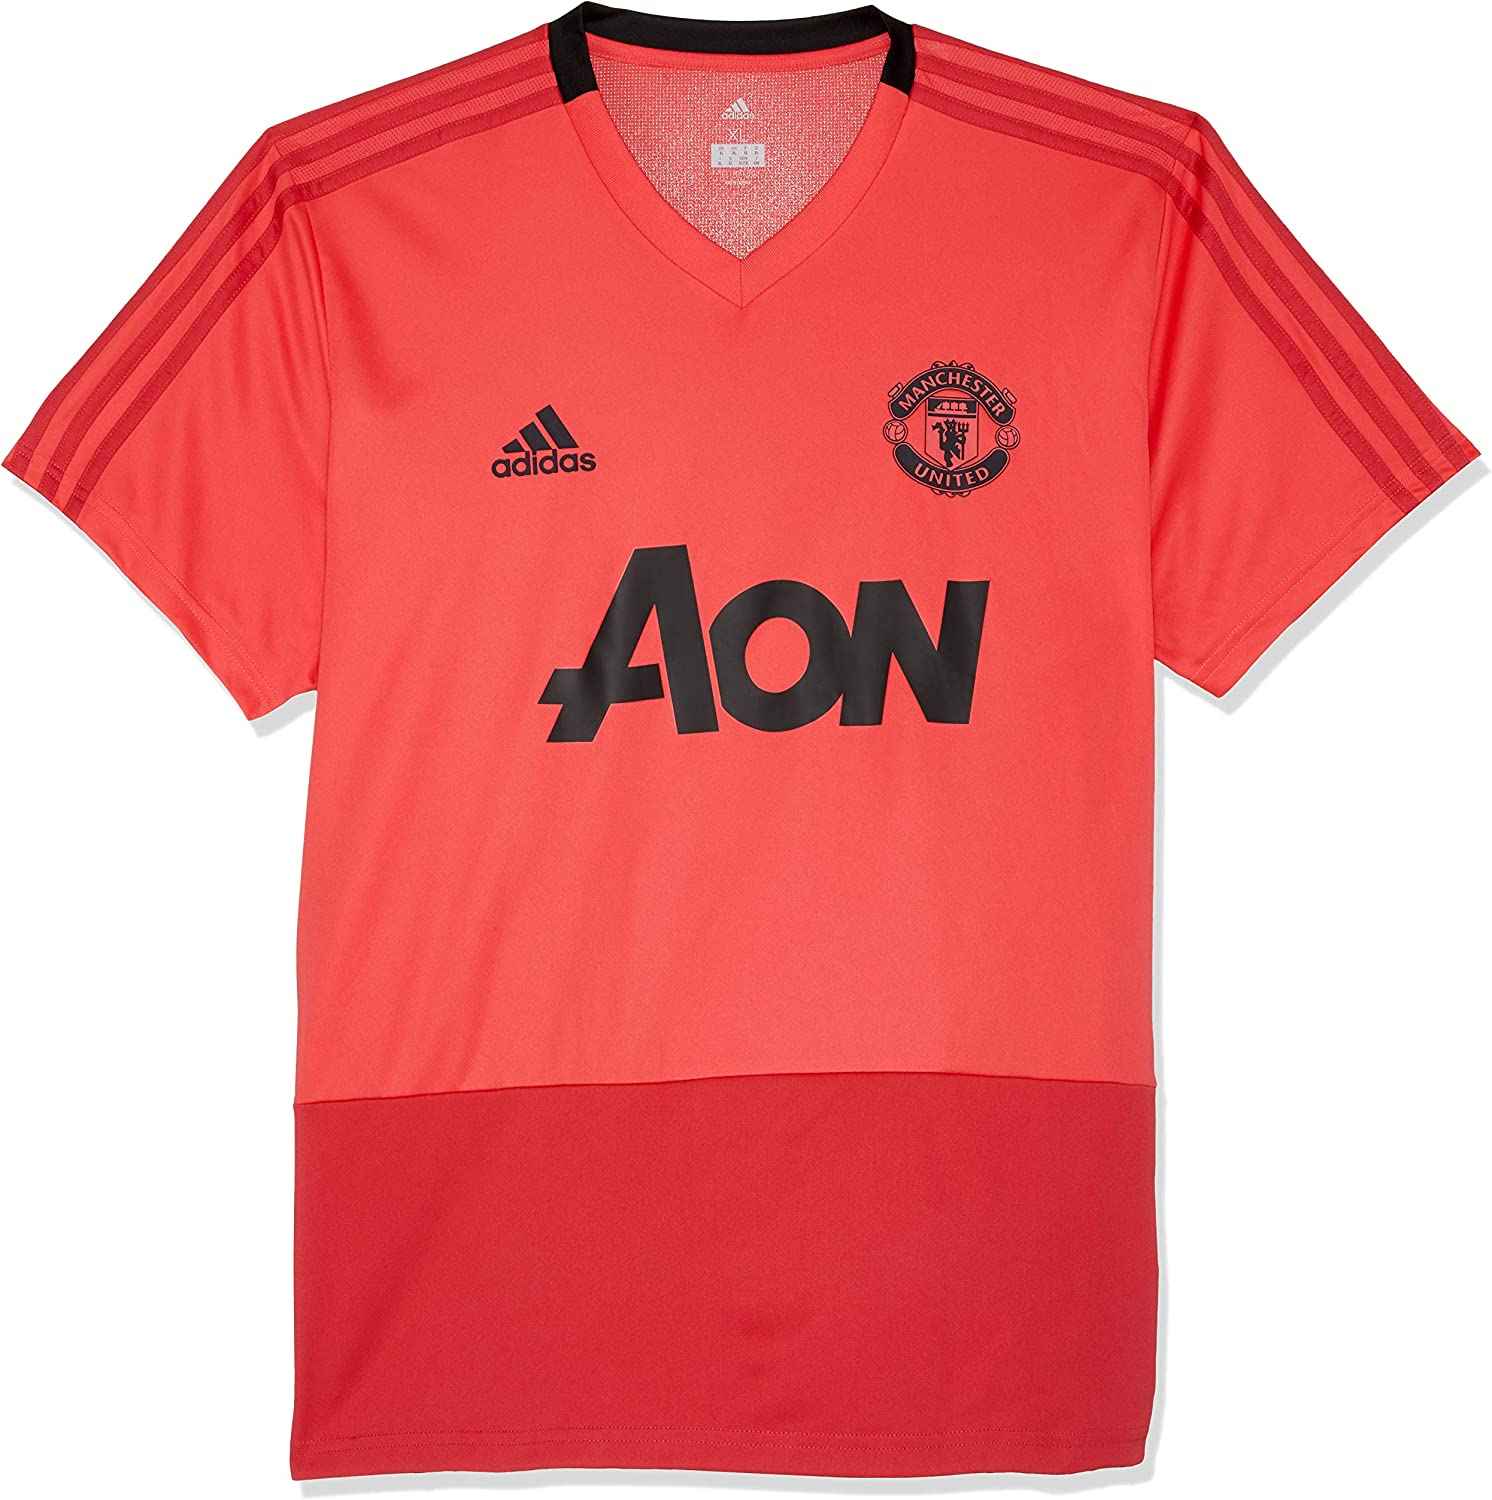 Amazon Com Adidas 2018 2019 Man Utd Training Football Soccer T Shirt Jersey Pink Clothing